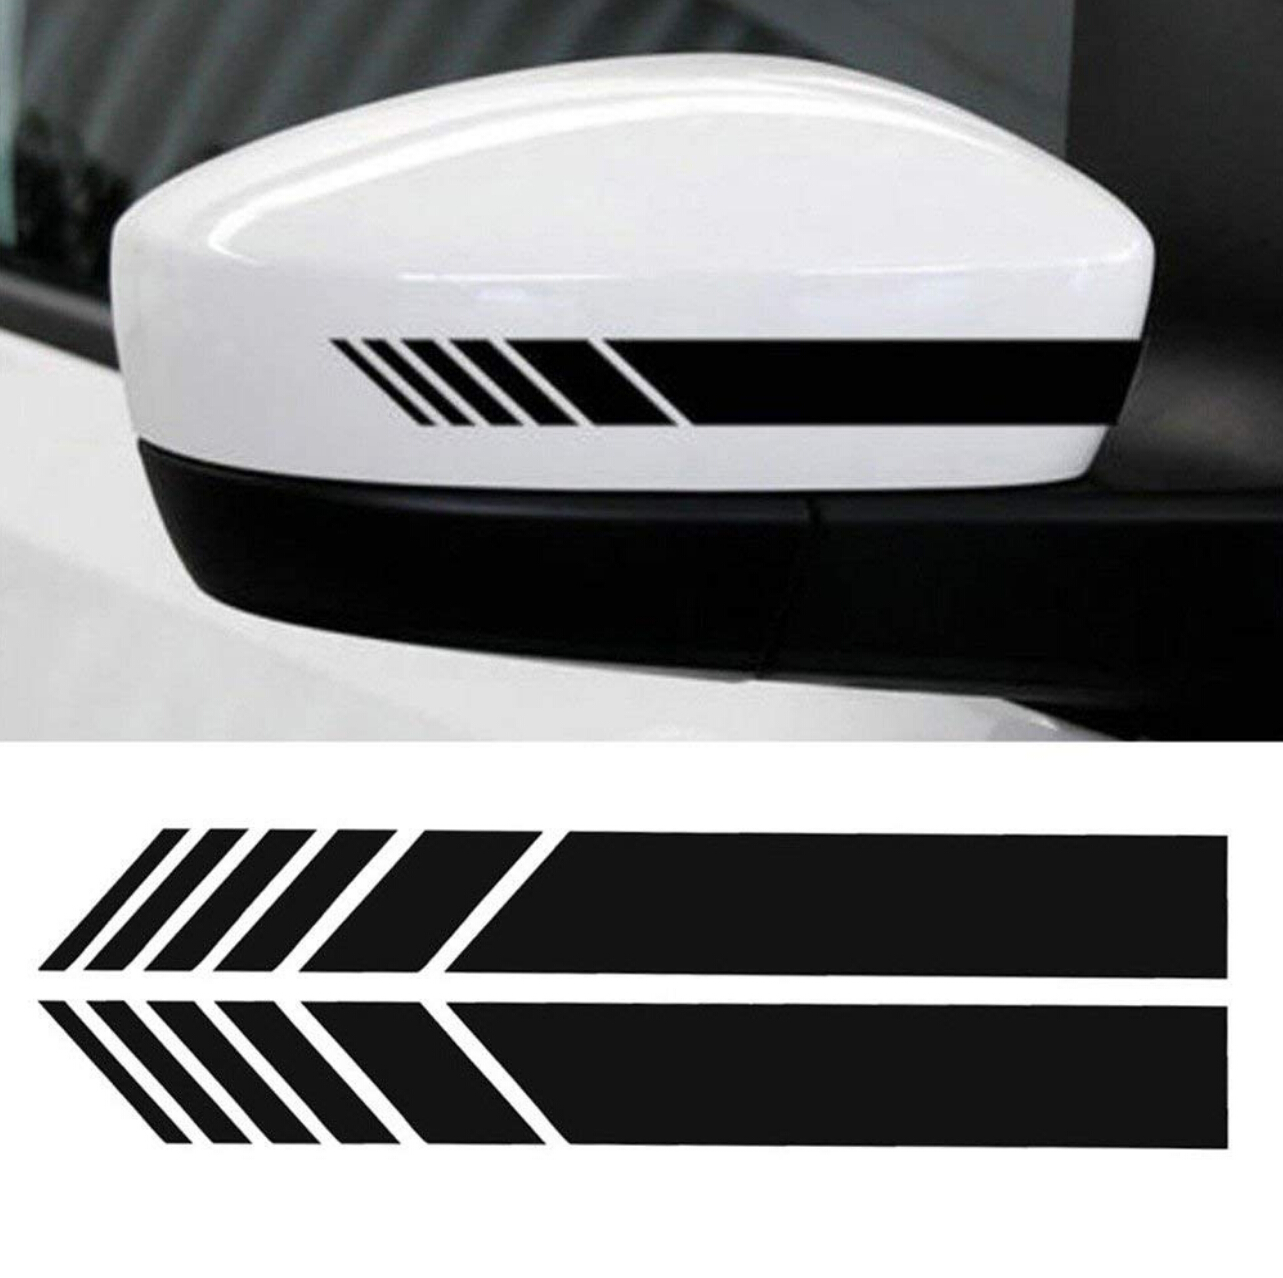 Exterior Accessories Latest Collection Of 2pcs Car Styling Auto Vinyl Graphic Sticker For Touran W211 A4 B6ford Fiesta Focus Mondeo Bmw E30 Renault Megane 2 Bmw F10 E87 Durable Service